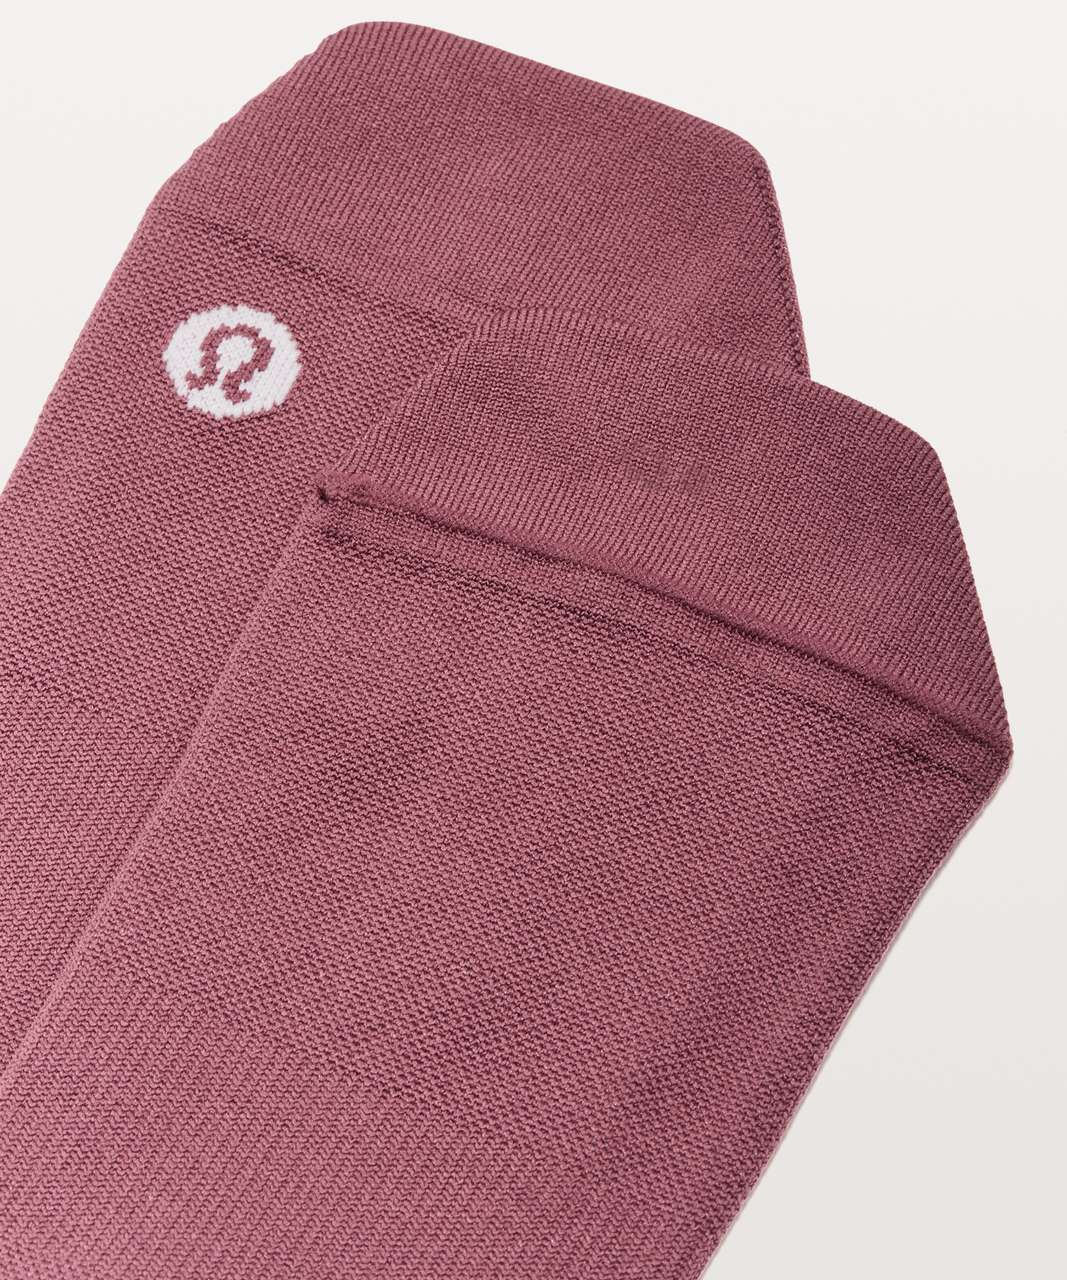 Lululemon Light Speed Sock *Silver - Misty Merlot